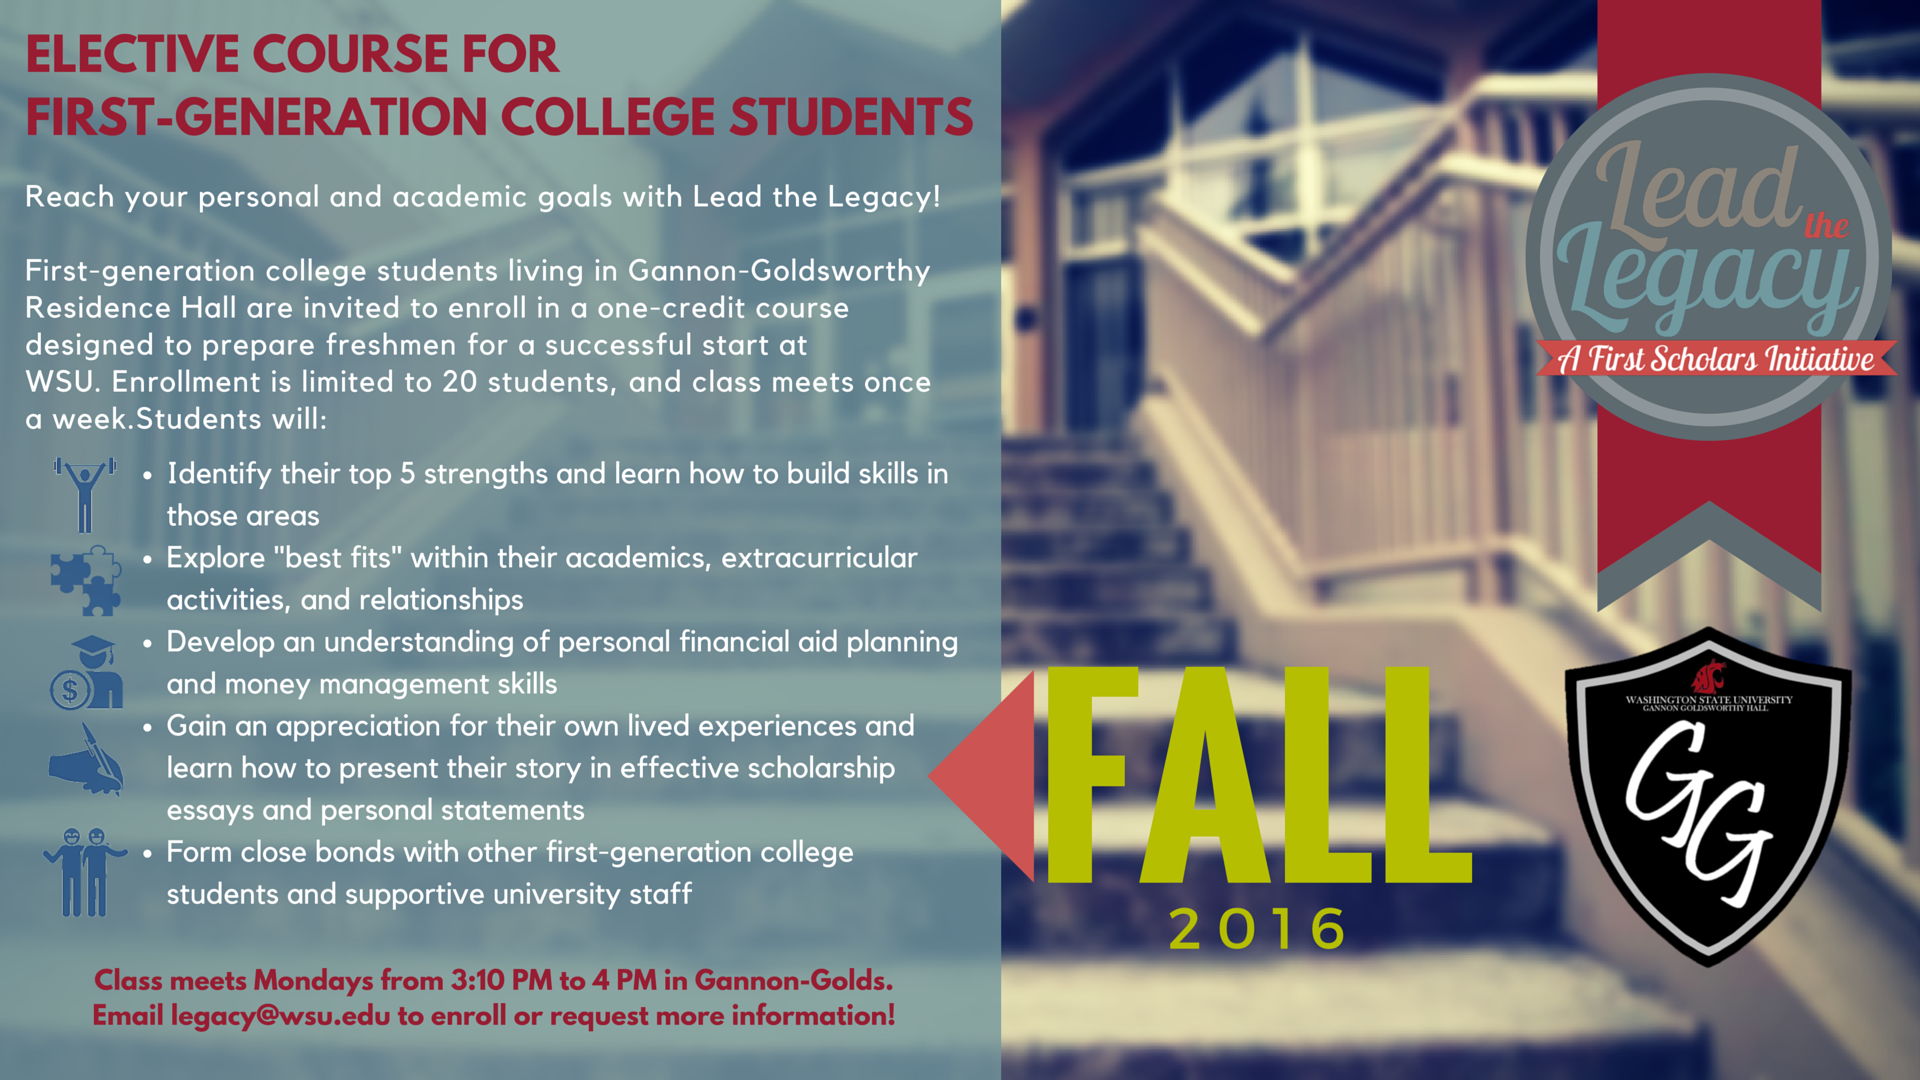 elective course for first generation college students gannon elective course for first generation college students gannon goldsworthy residence hall